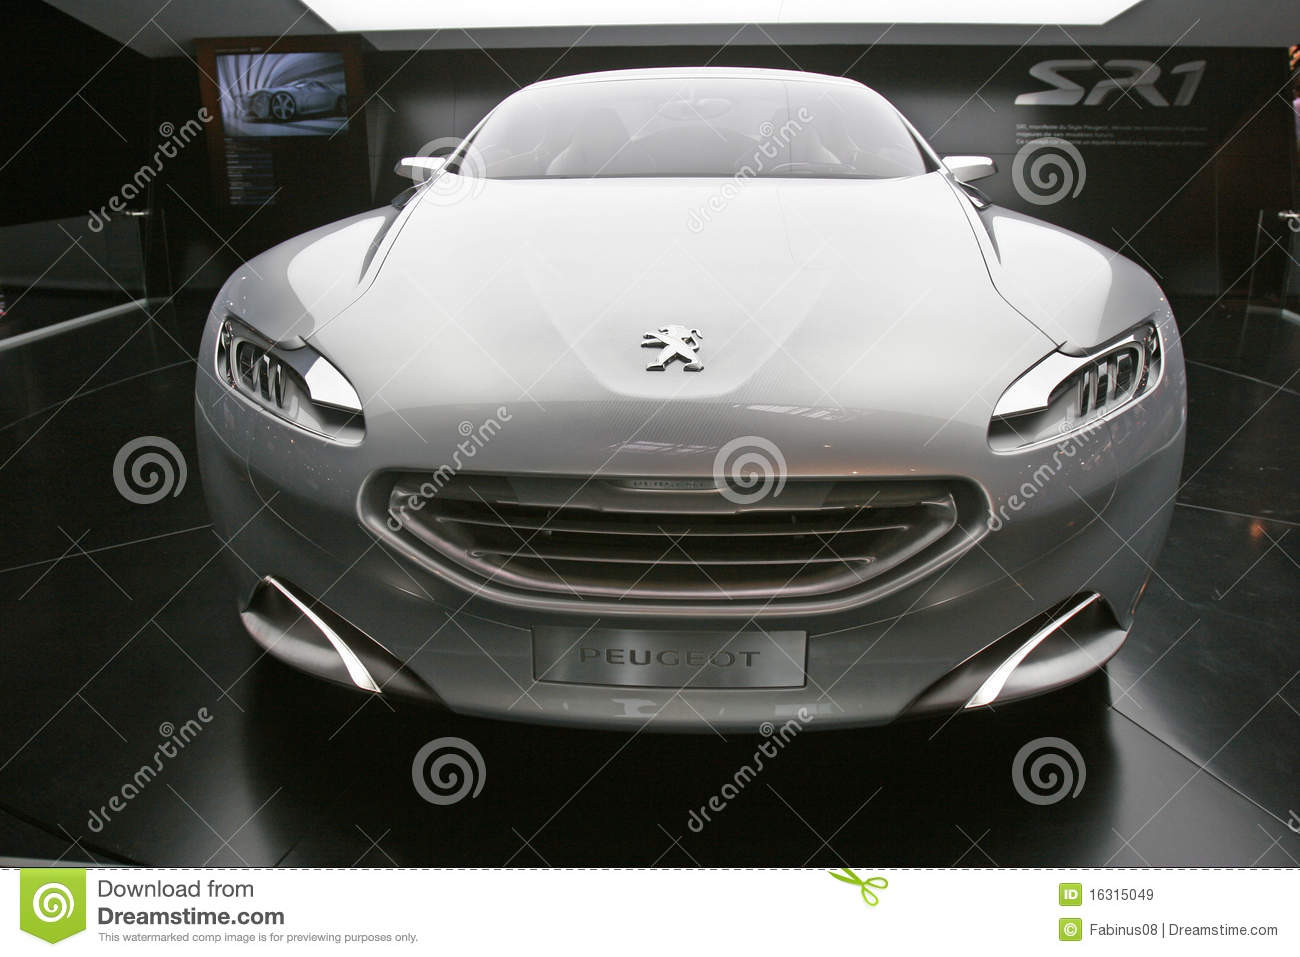 Image 11 Of 50 2018 Peugeot Sr1 Concept Car Front And Side 1951 Buick Xp 300 Editorial Stock